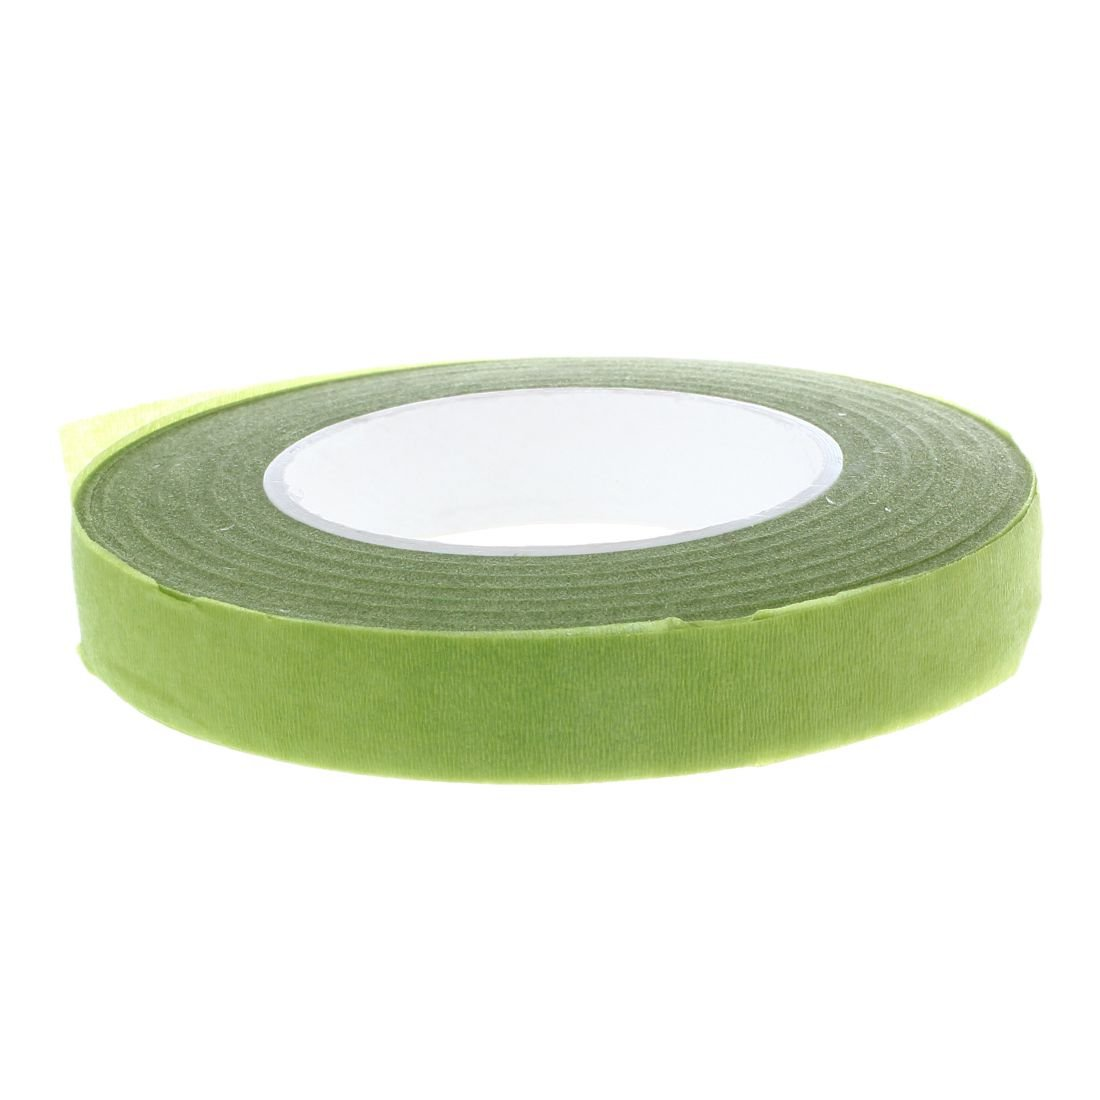 TOOGOO(R) 30Yard 12mm Self-adhesive Paper Tape Floral Stem for Garland Wreaths DIY Craft Artificial Silk Flower(light green)